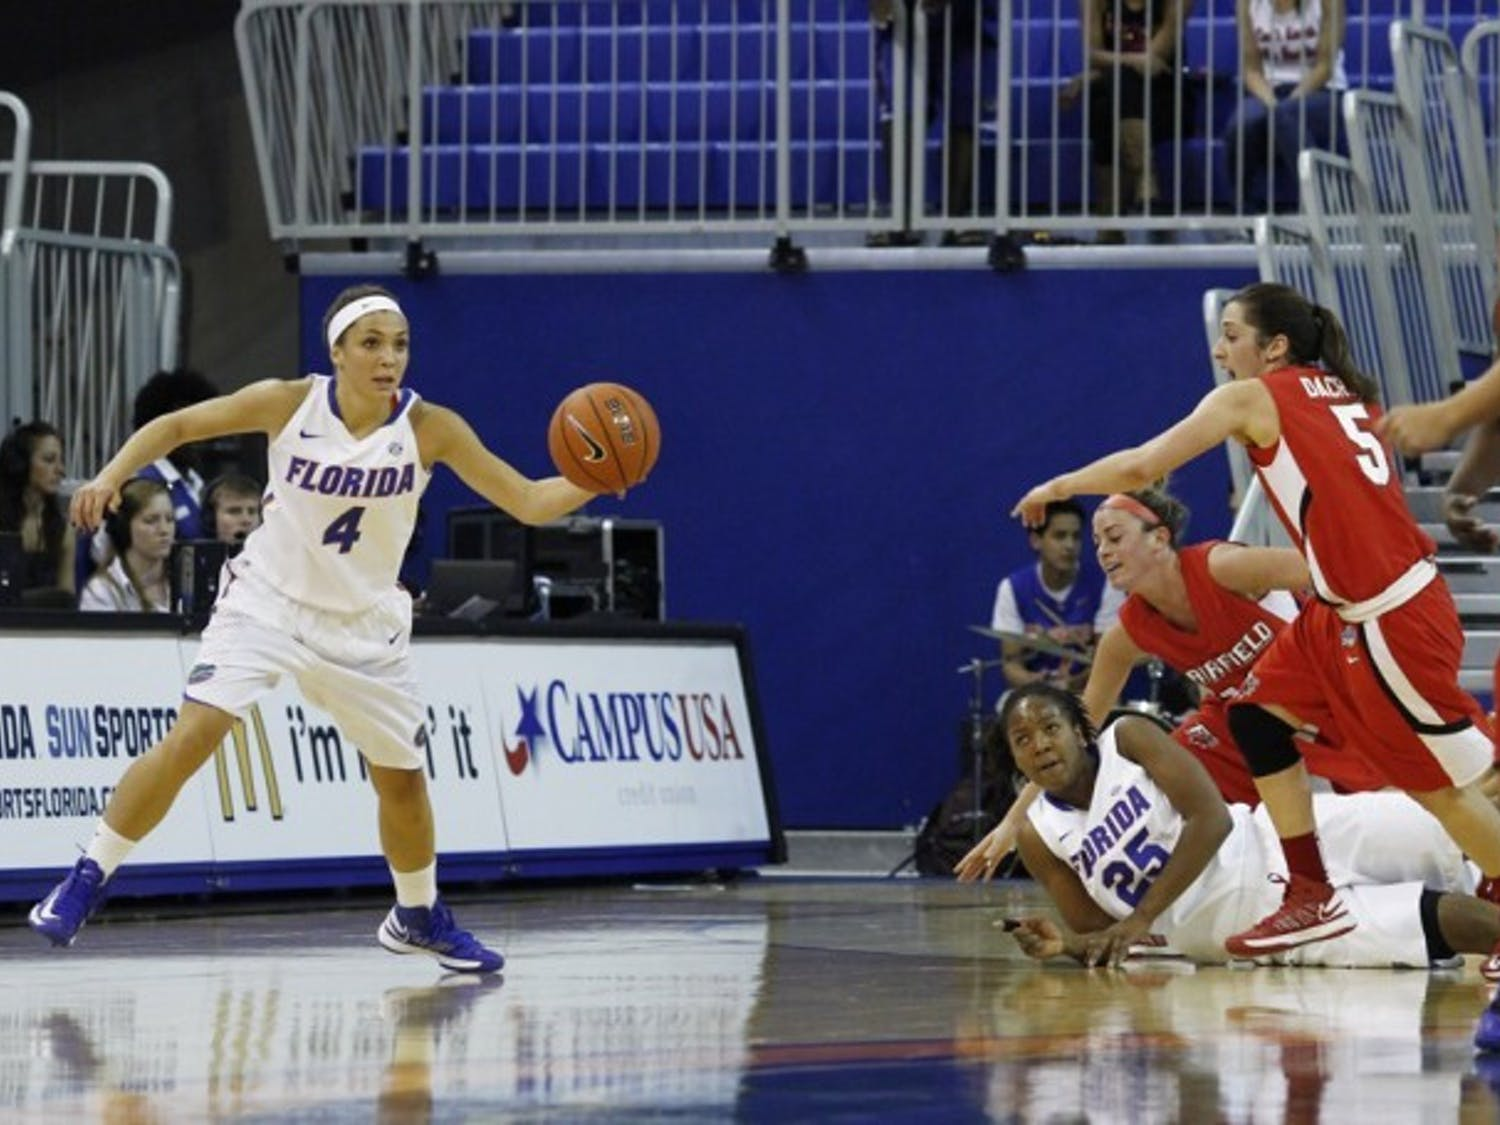 Redshirt freshman guard Carlie Needles (4) dribbles during Florida's 71-49 win against Fairfield on Nov. 9 in the O'Connell Center. Needles and the Gators have struggled to defend the three-point line.